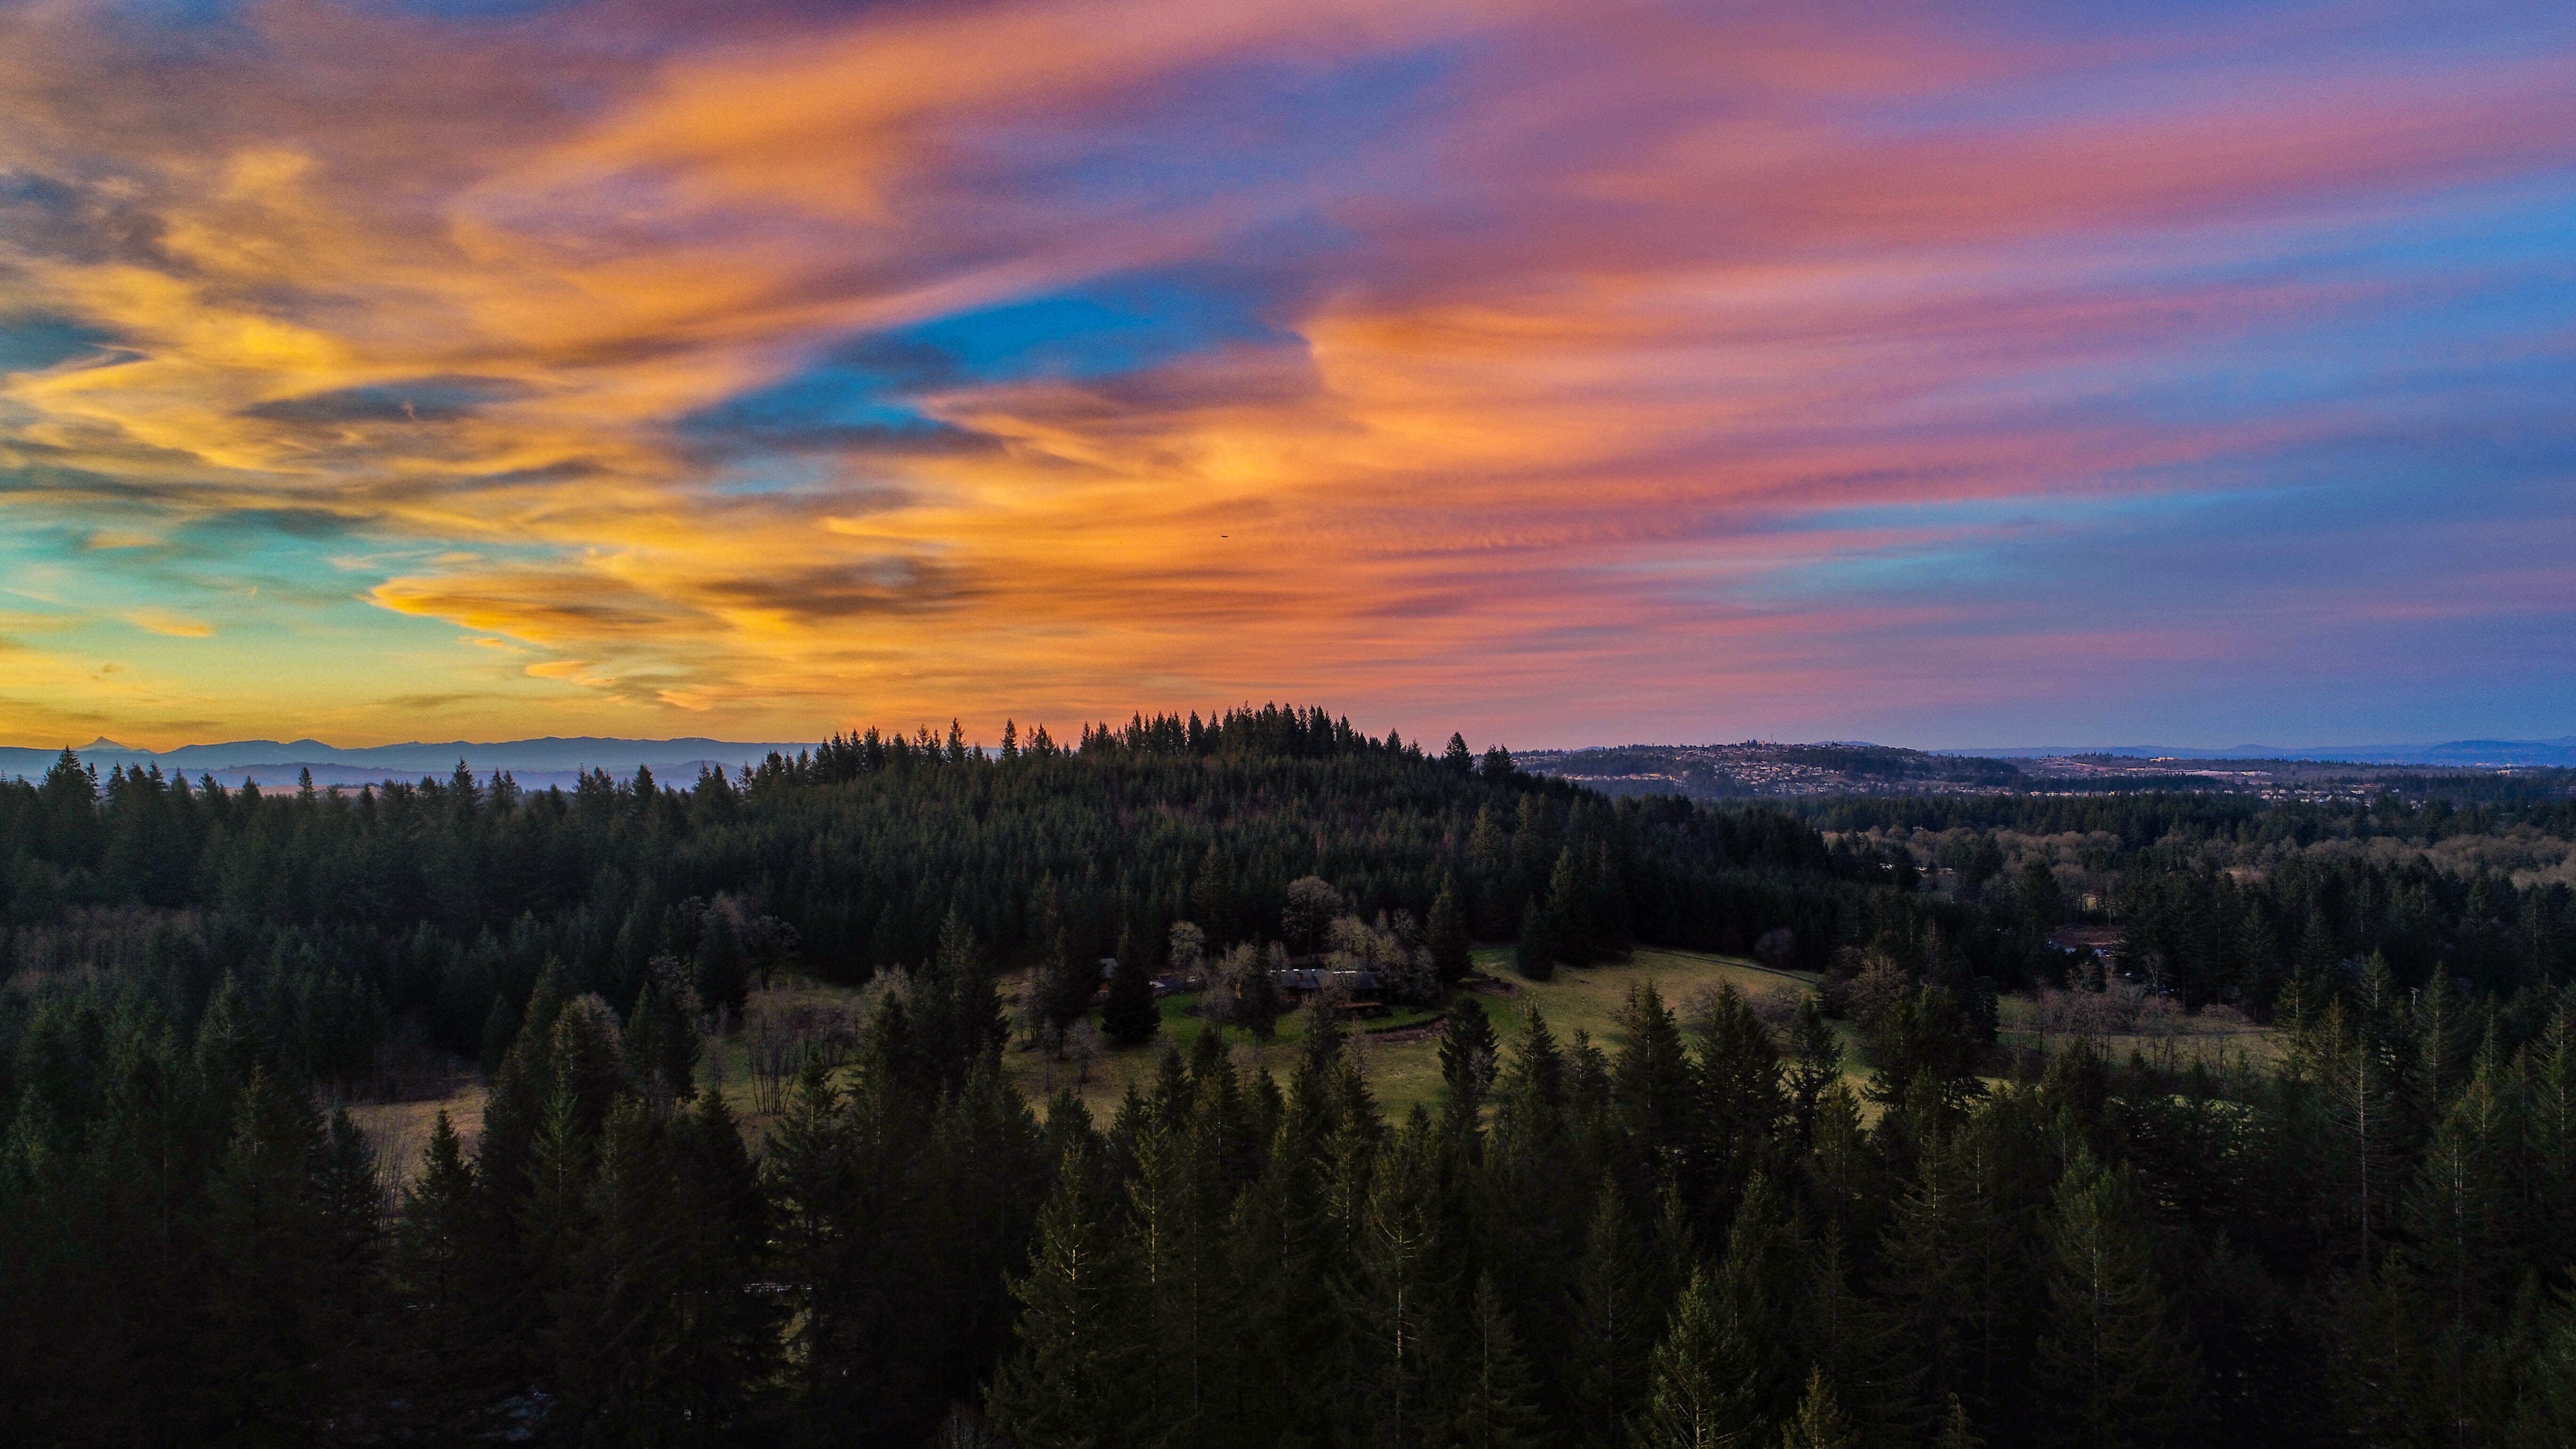 aerial photography of hill covered with trees at sunset